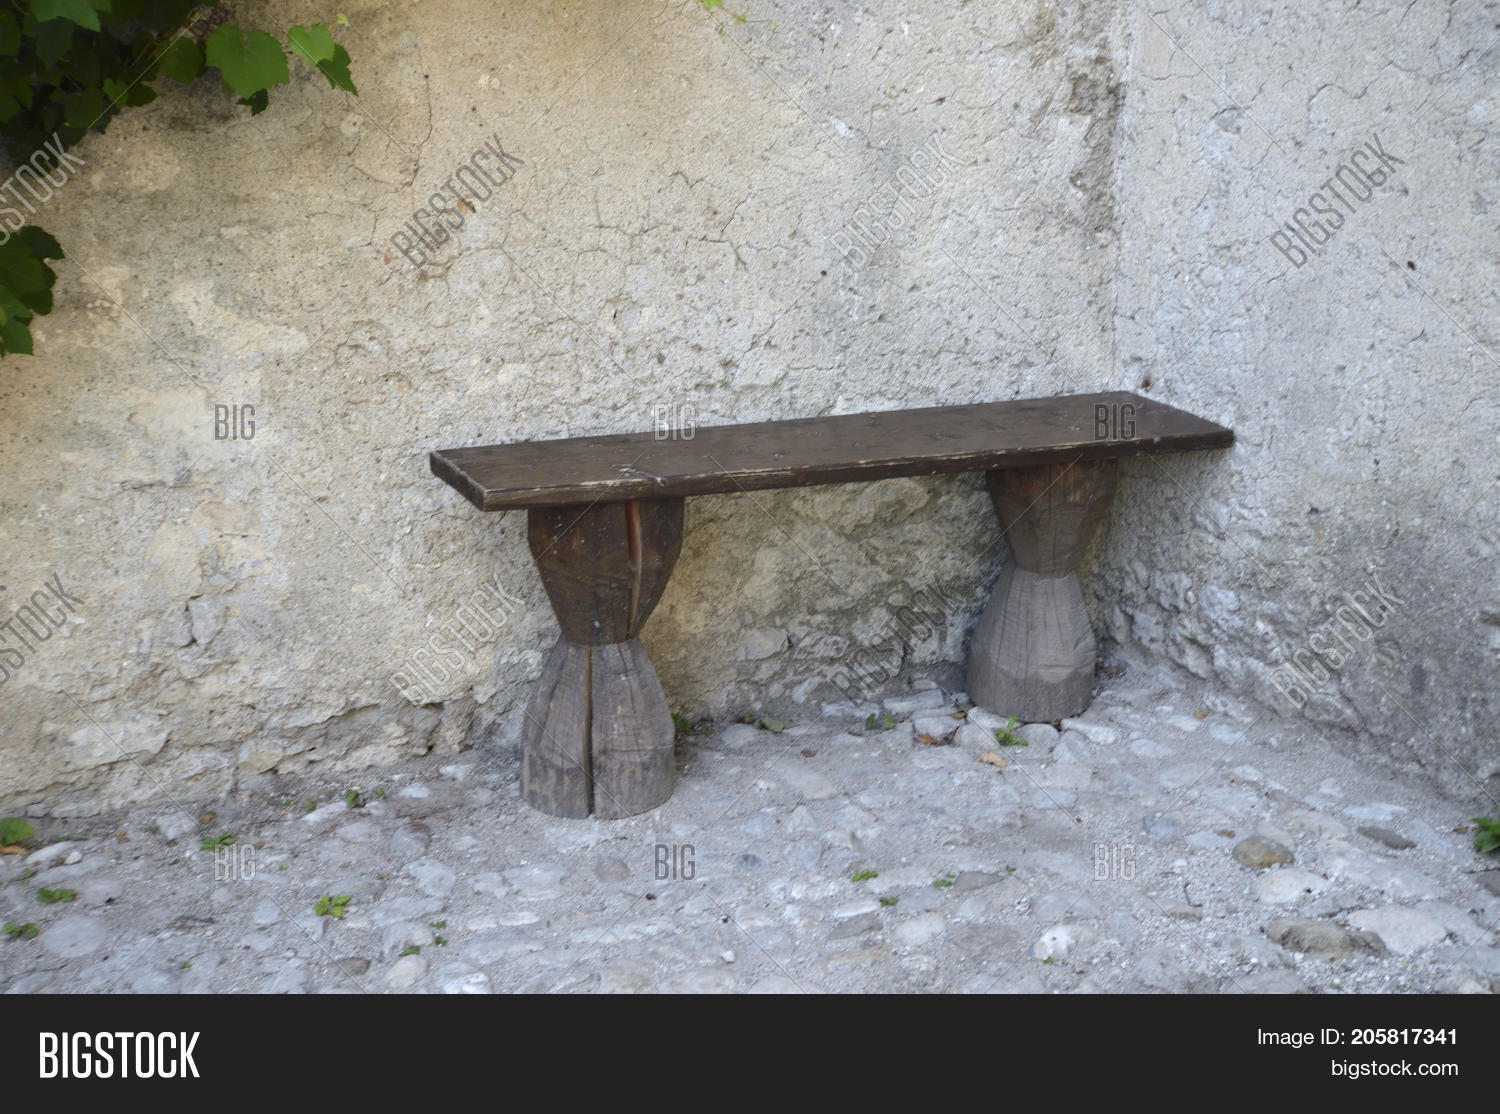 Wondrous Wooden Bench Near Image Photo Free Trial Bigstock Machost Co Dining Chair Design Ideas Machostcouk